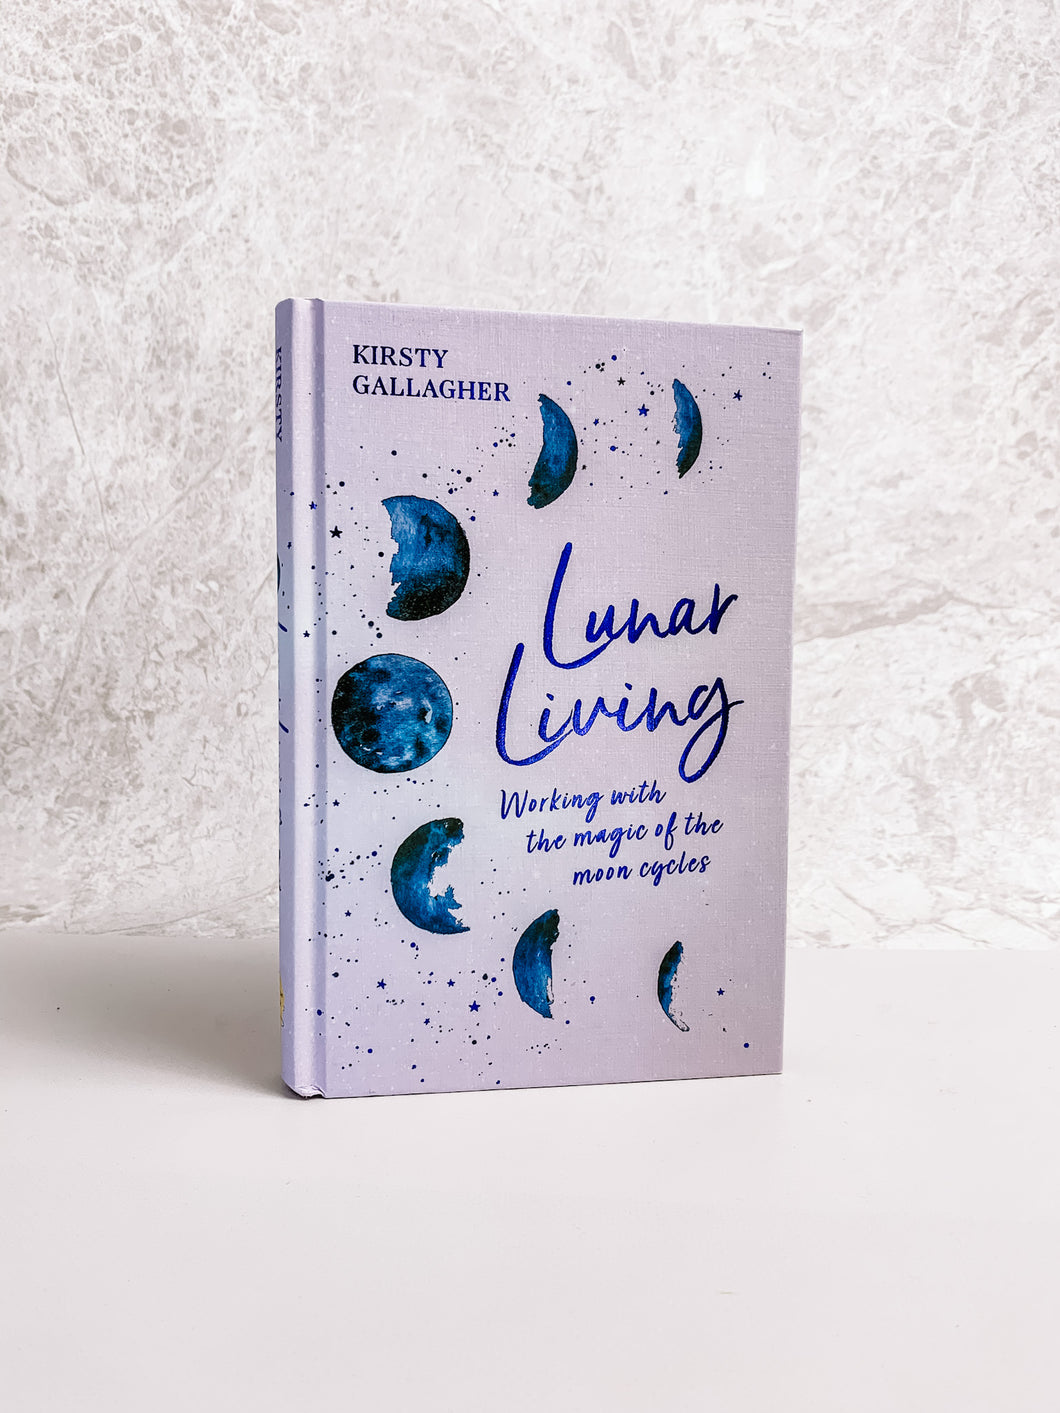 'Lunar Living' by Kristy Gallagher